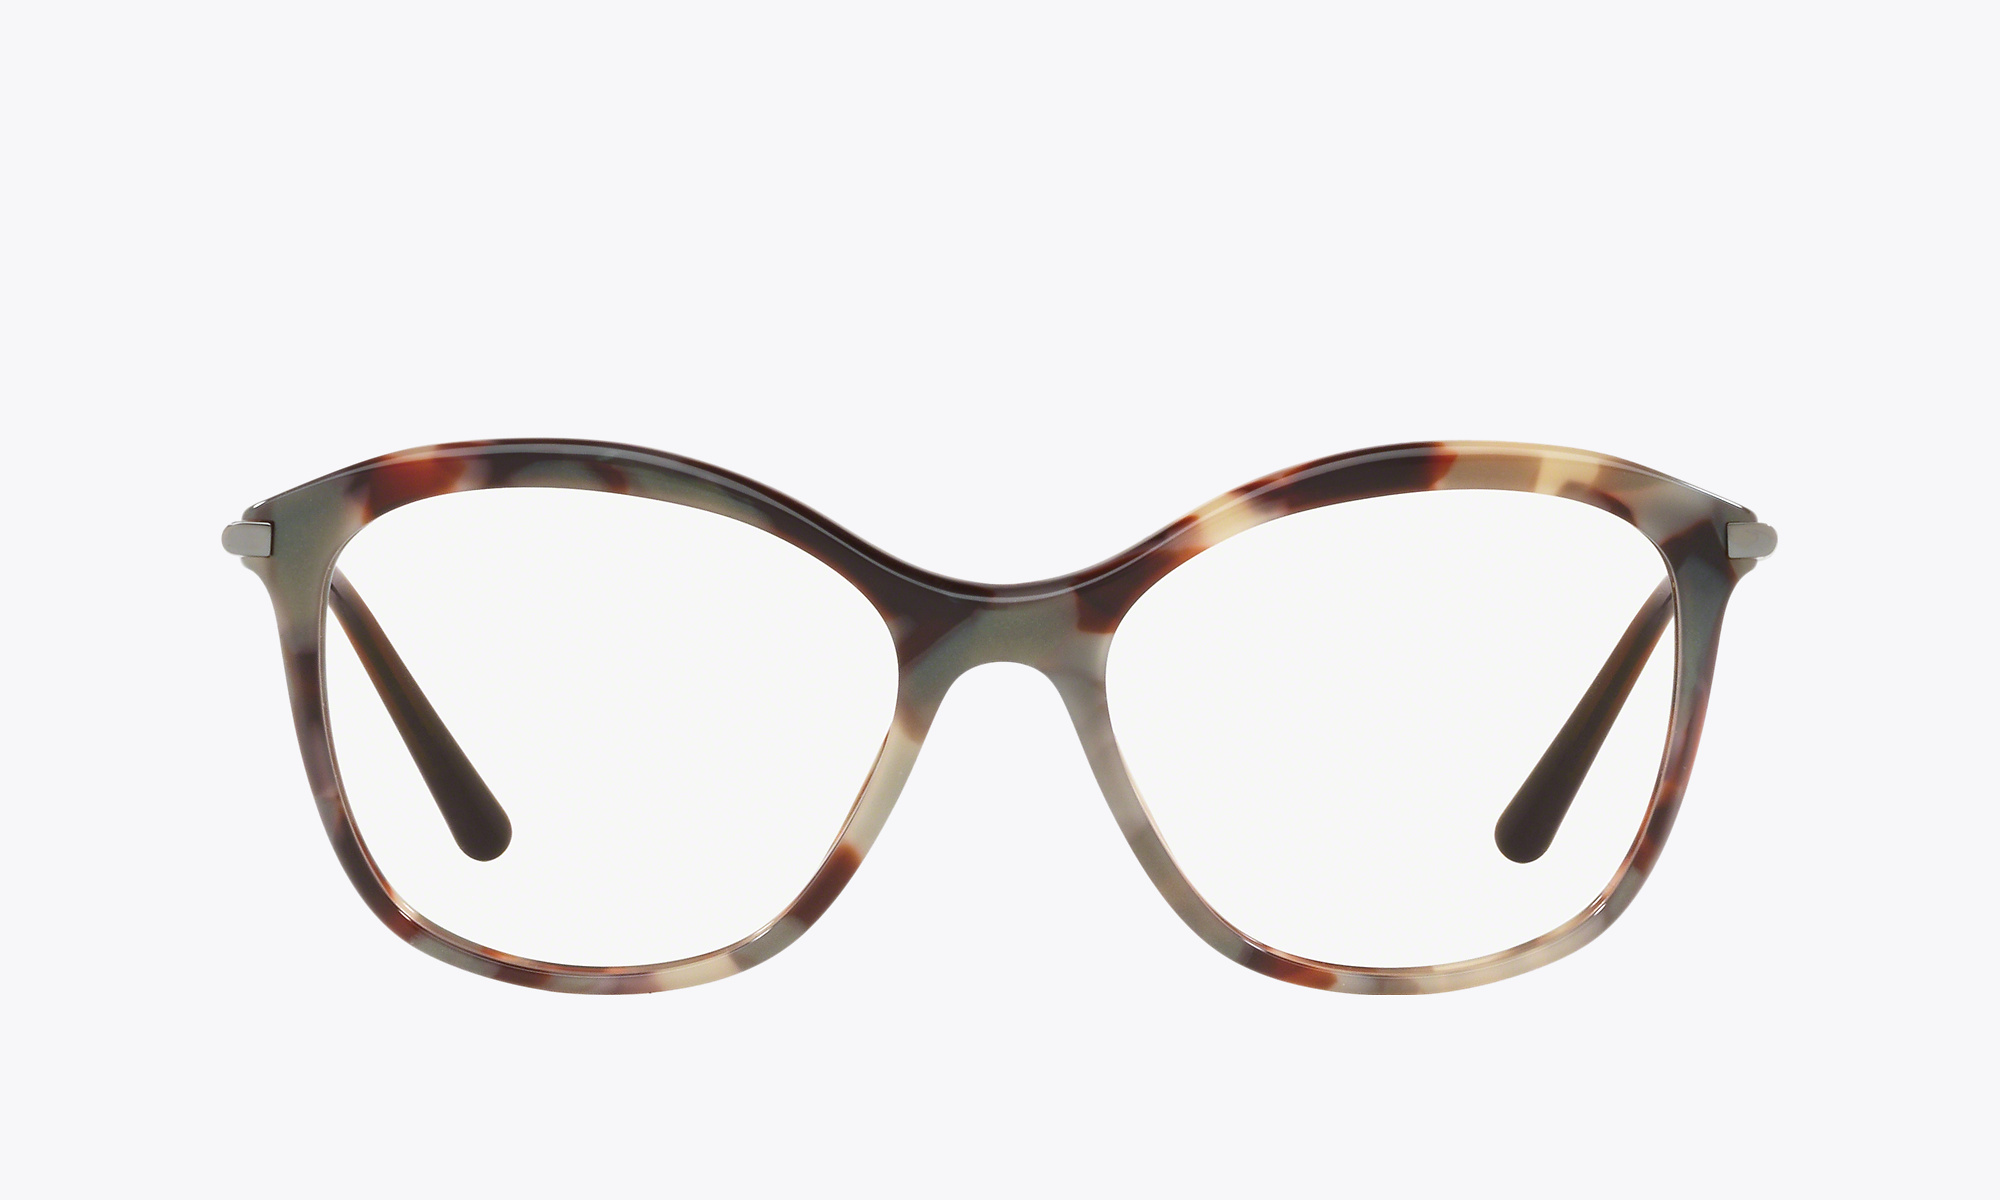 Image of Dolce & Gabbana DG3299 color Tortoise